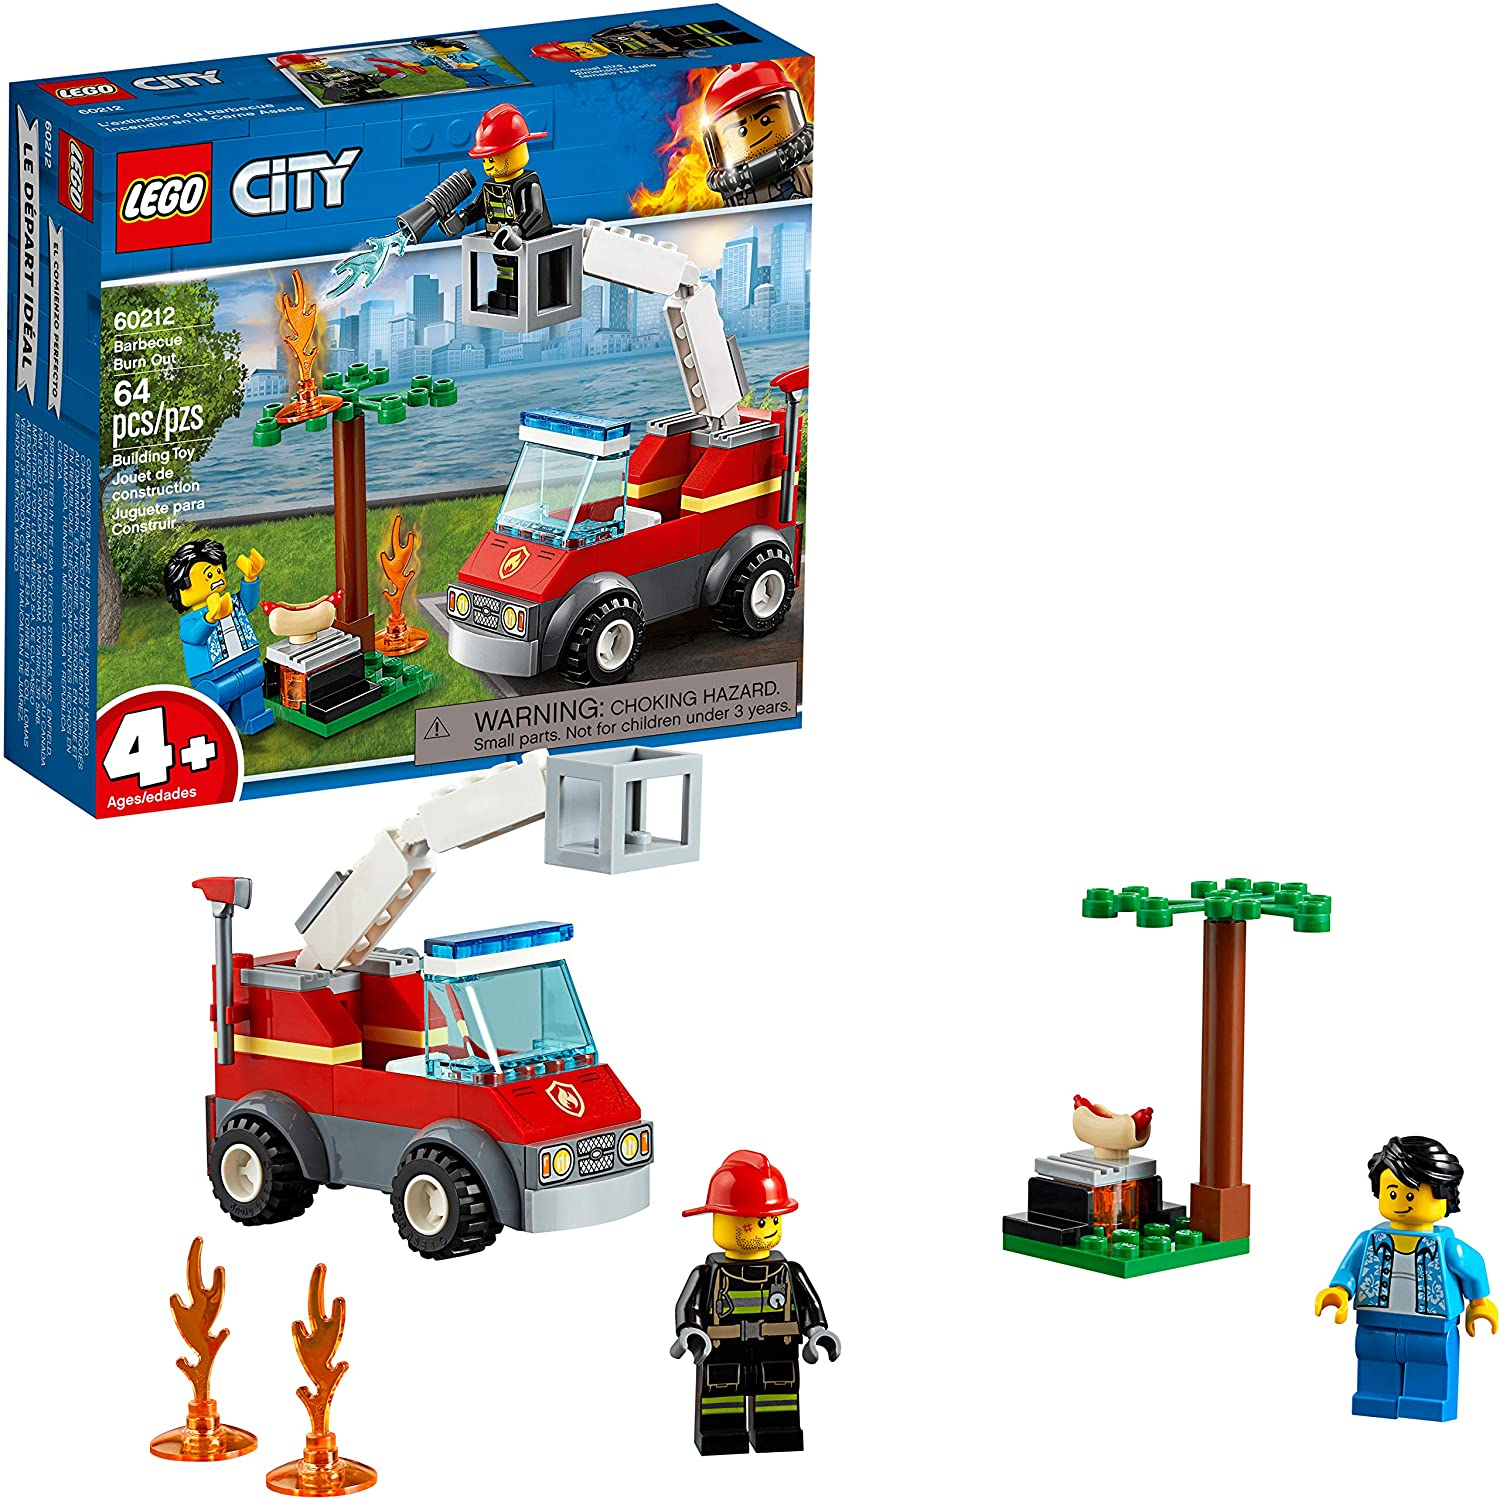 LEGO City Barbecue Burn Out 60212 Building Kit (64 Pieces)